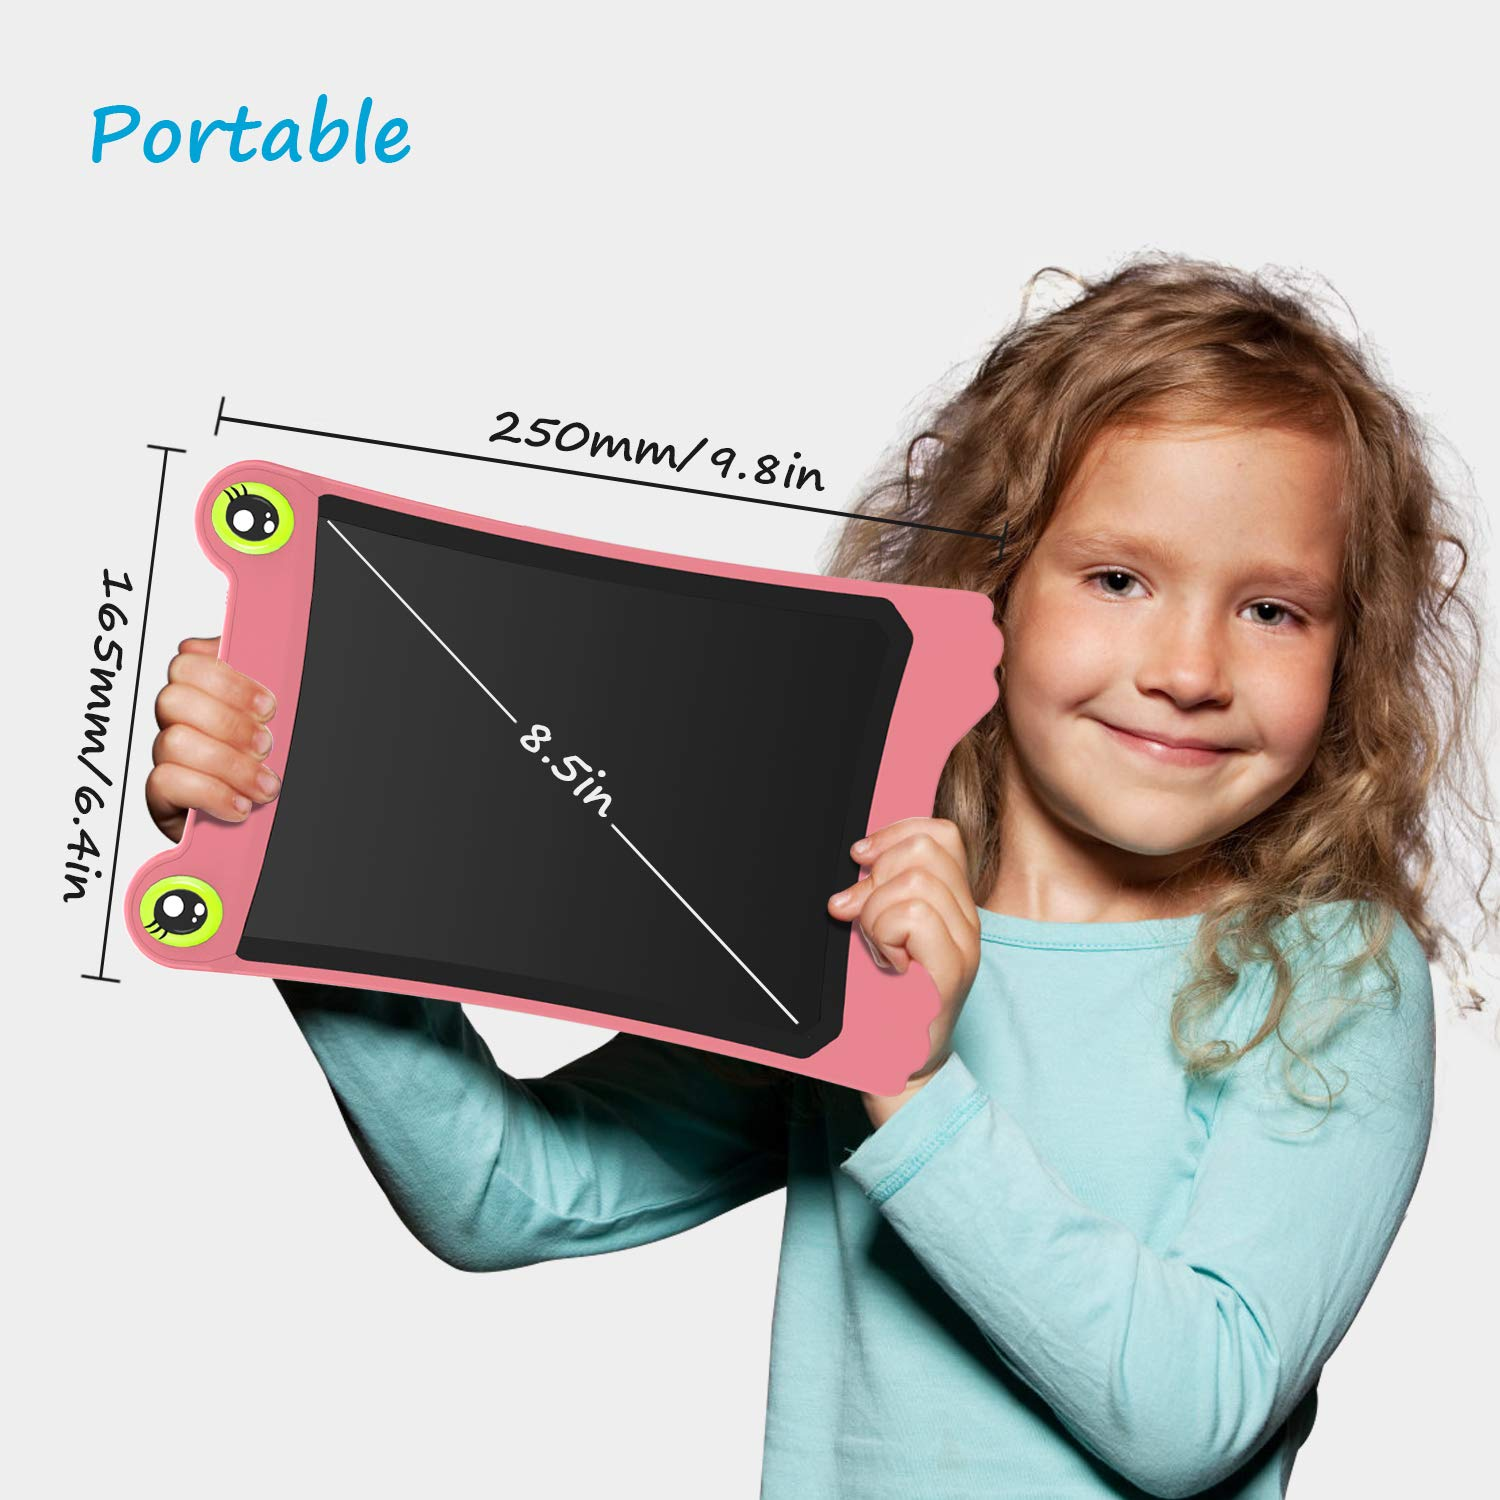 NEWYES 8.5 Inch LCD Writing Tablet Updated Frog Pad Children Electronic Doodle Board Jot Digital E-Writer Kids Scribble Toy with Lock Function Pink by NEWYES (Image #2)